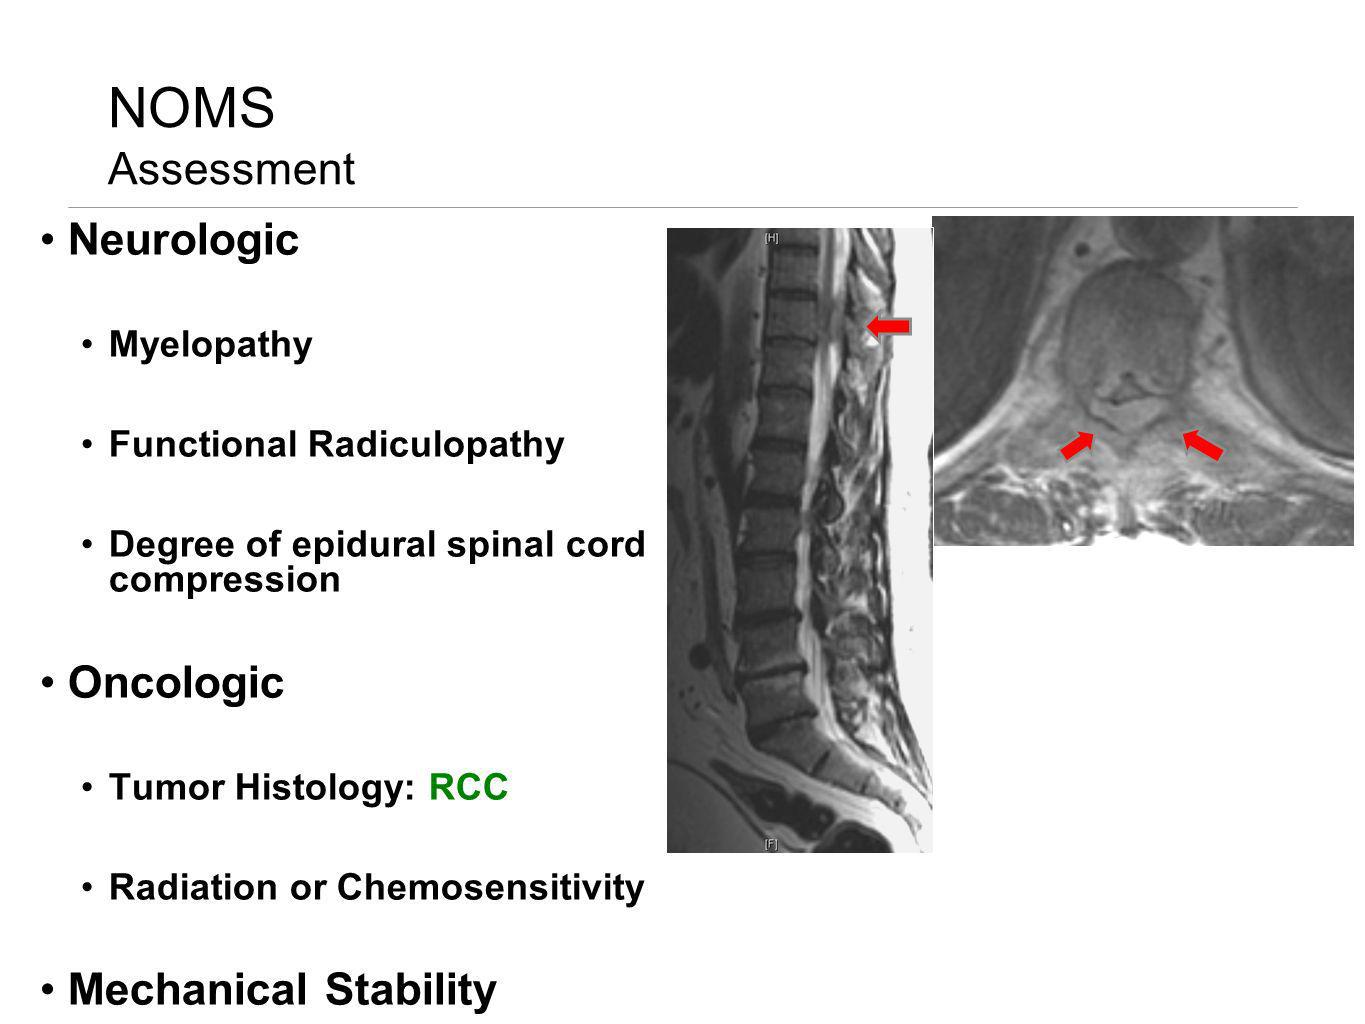 NOMS Assessment Neurologic Myelopathy Functional Radiculopathy Degree of epidural spinal cord compression Oncologic Tumor Histology: RCC Radiation or